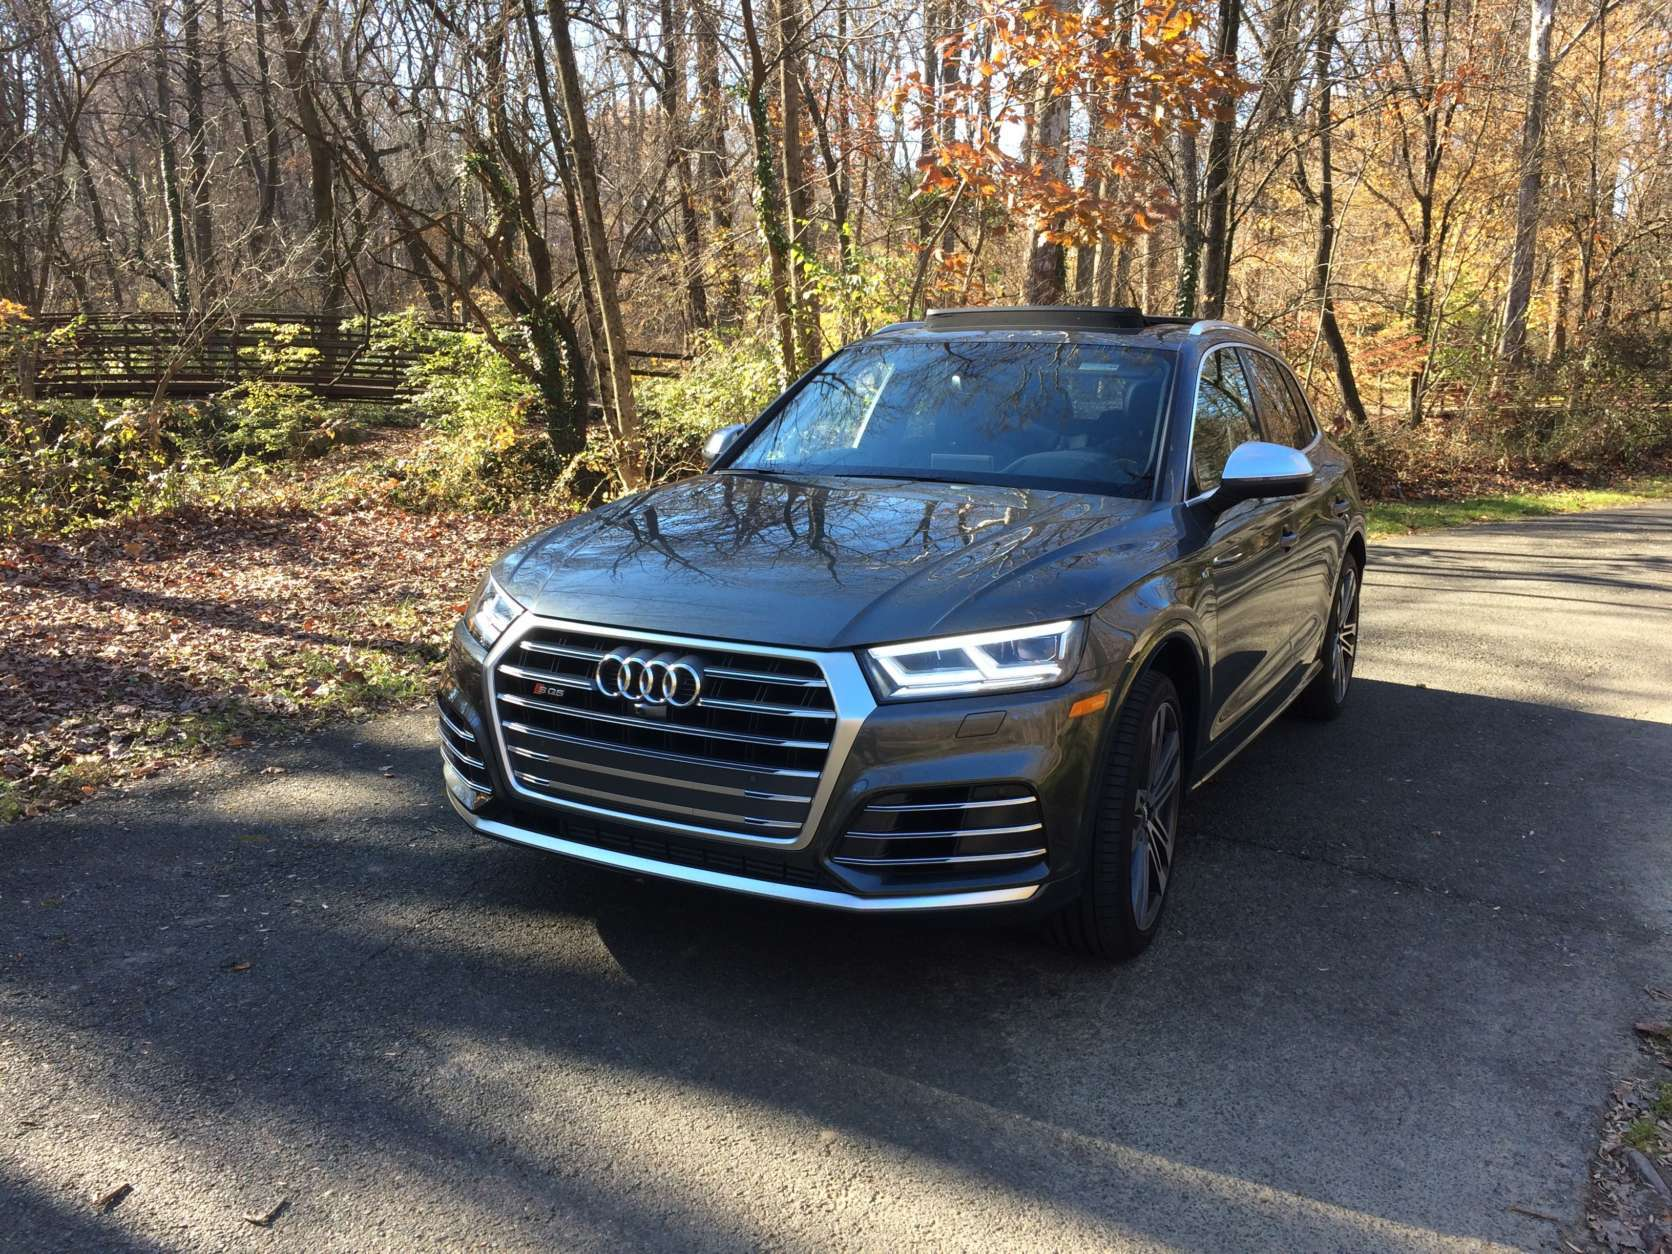 Car Guy Mike Parris said the latest Audi SQ5 combines a sporty driving machine with a crossover. The added comfort and technology makes it a better all-around crossover with a bit more fun. (WTOP/Mike Parris)